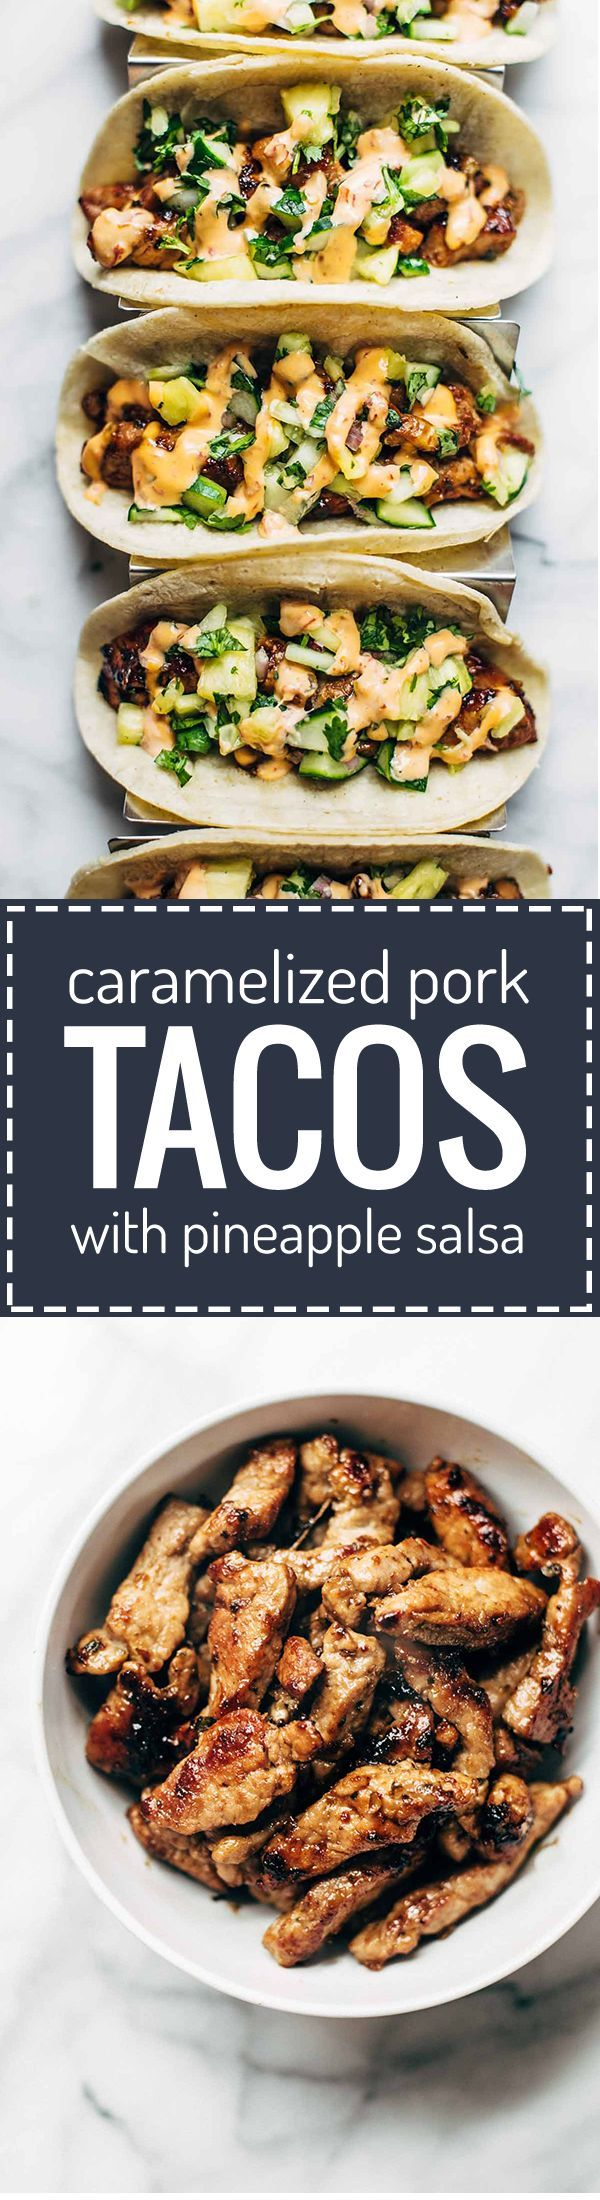 Caramelized Pork Tacos with Pineapple Salsa - topped with sriracha mayo, obviously. ♡ quick and easy to make - LOVE this recipe! | http://pinchofyum.com